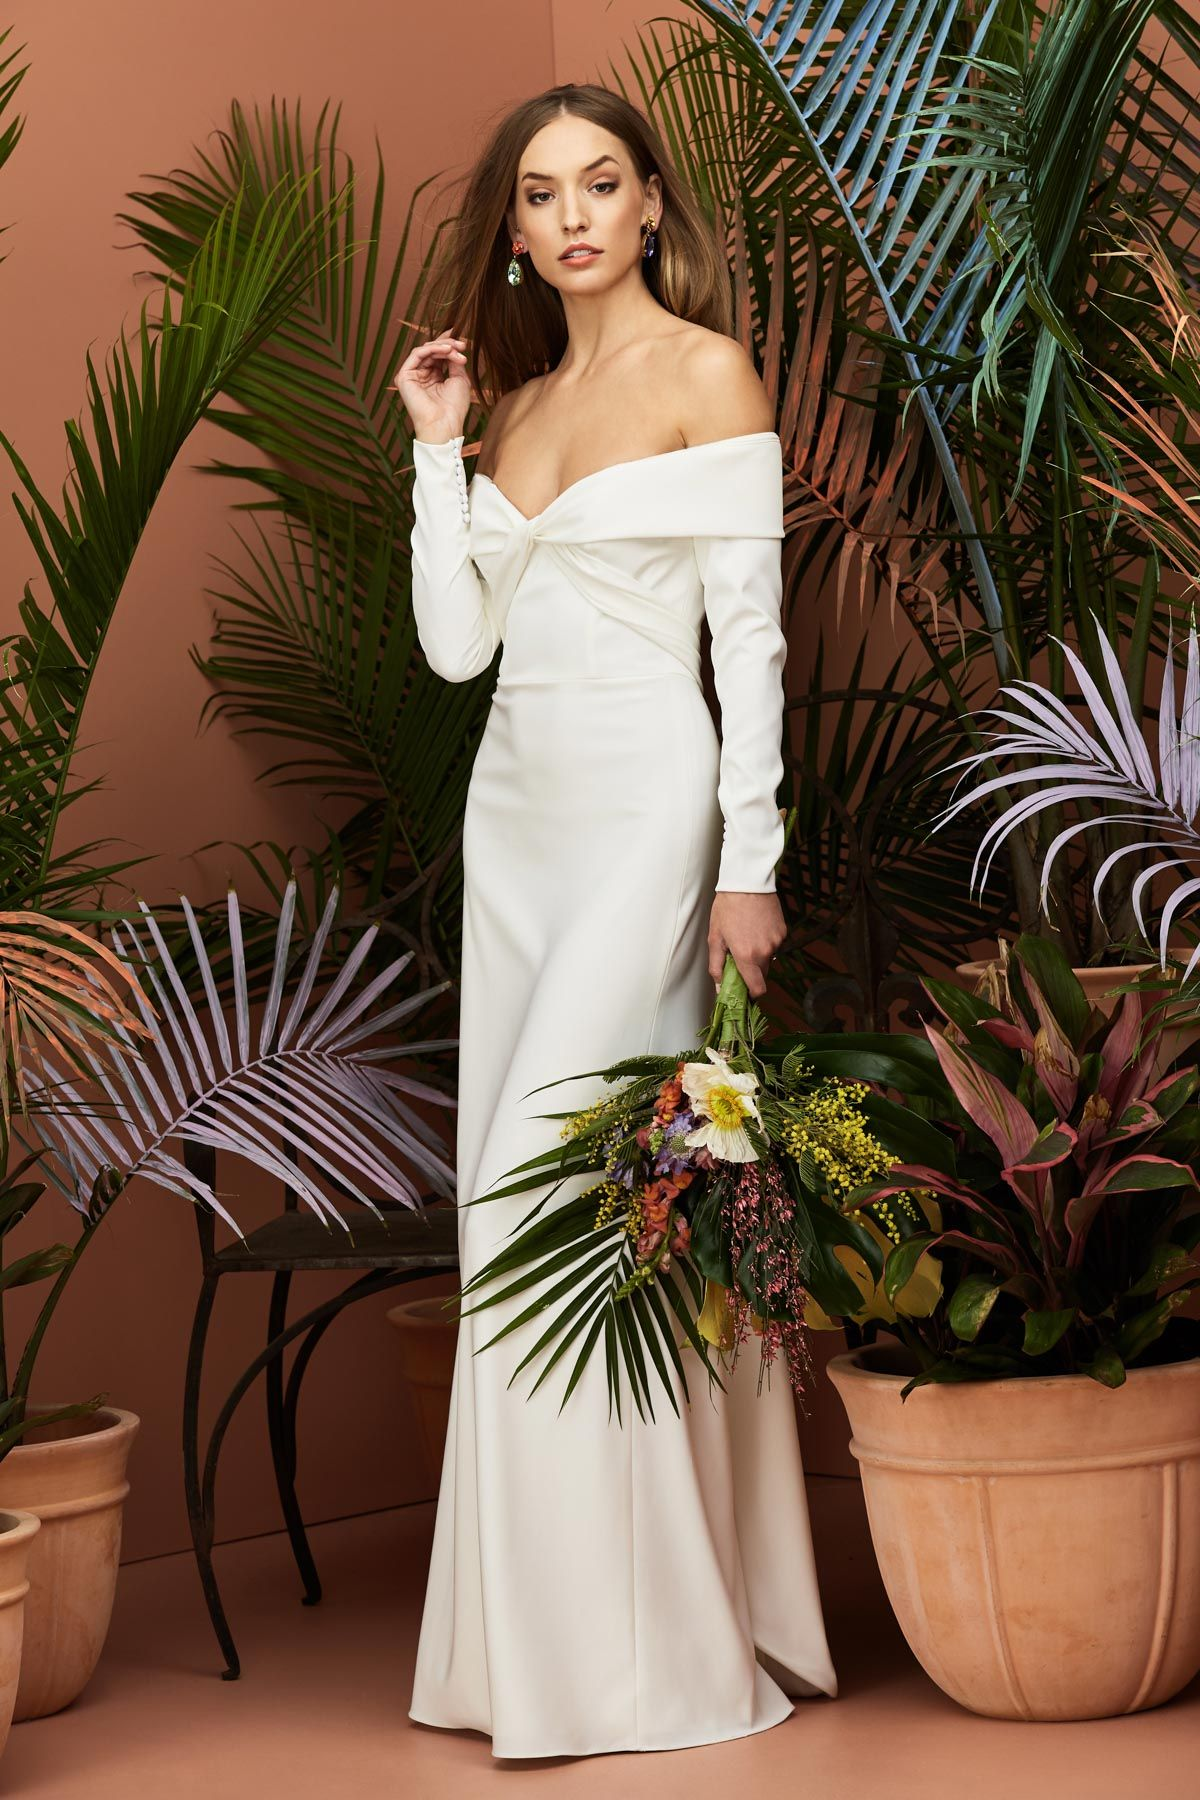 This wedding gown features a chic offtheshoulder style long